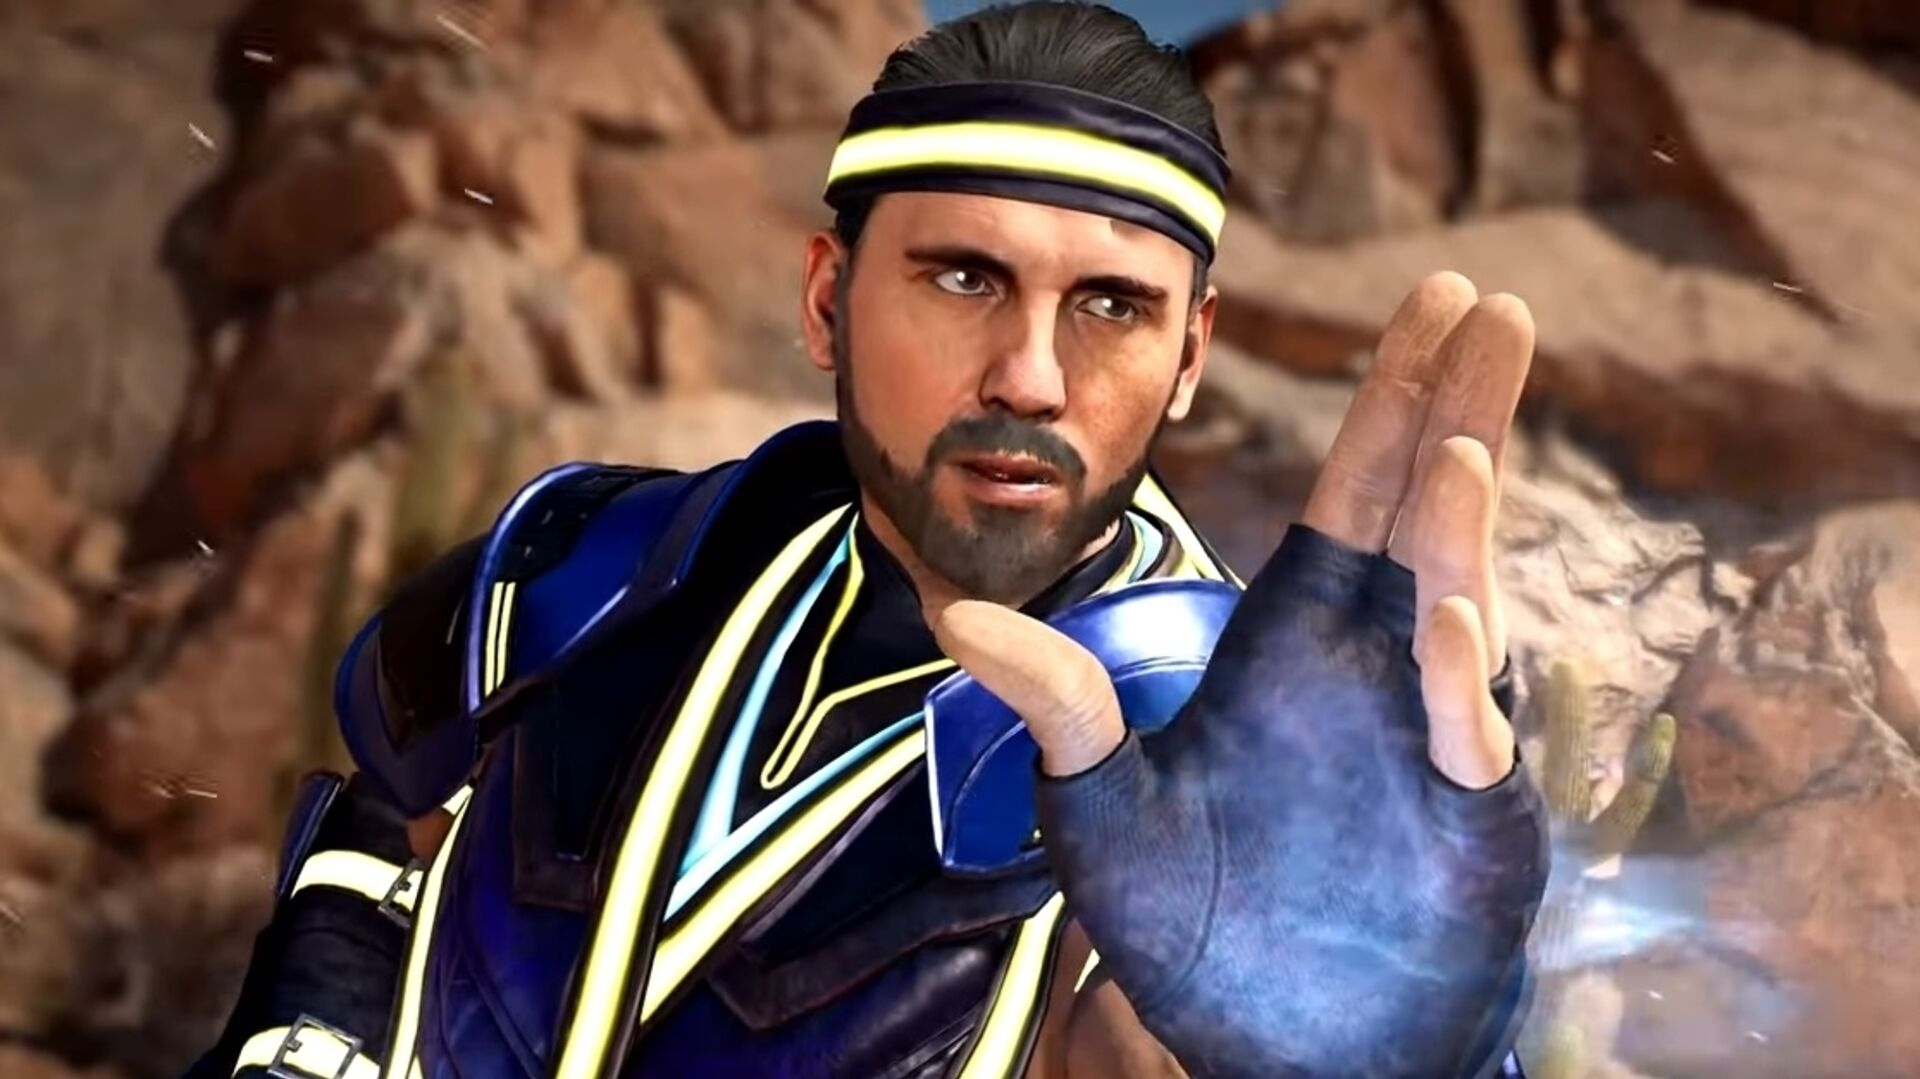 A Dj Did Voice Acting For A New Mortal Kombat 11 Sub Zero Skin And